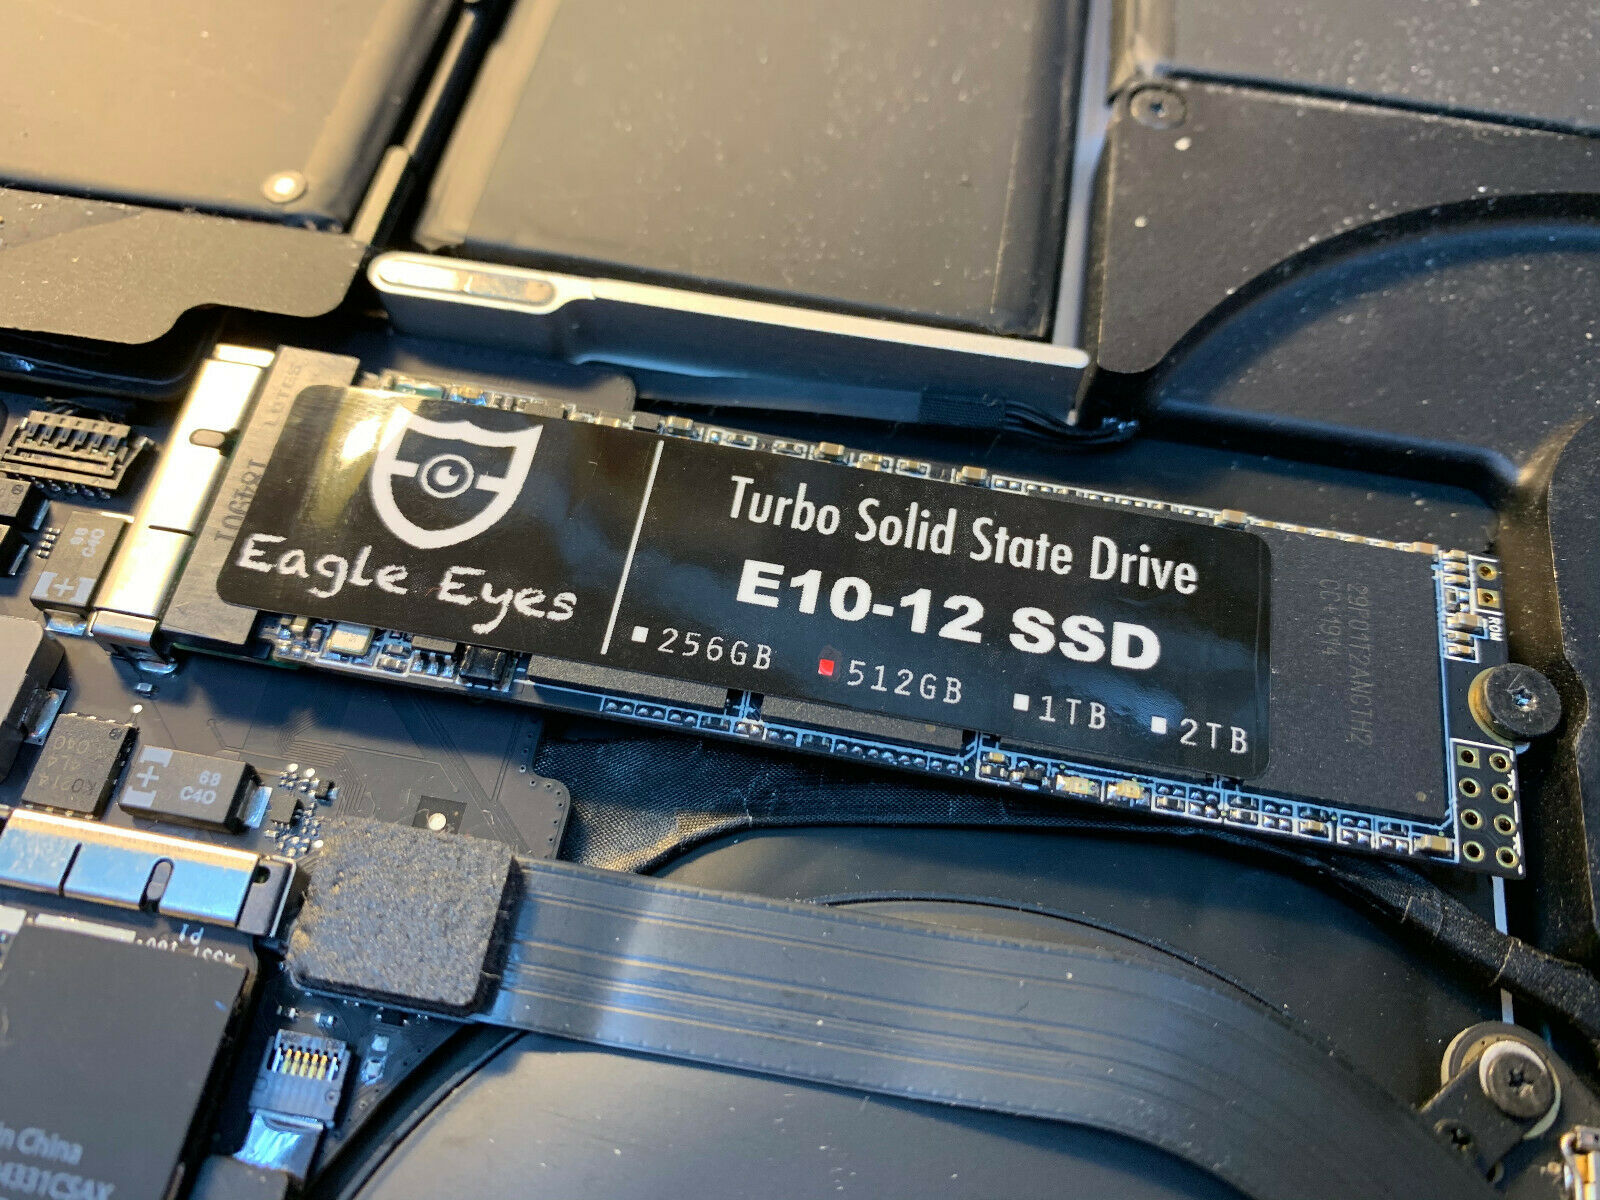 Eagle Eyes New 256GB SSD for Apple MacBook Pro Retina A1425 13 /& A1398 15 2012 Early 2013